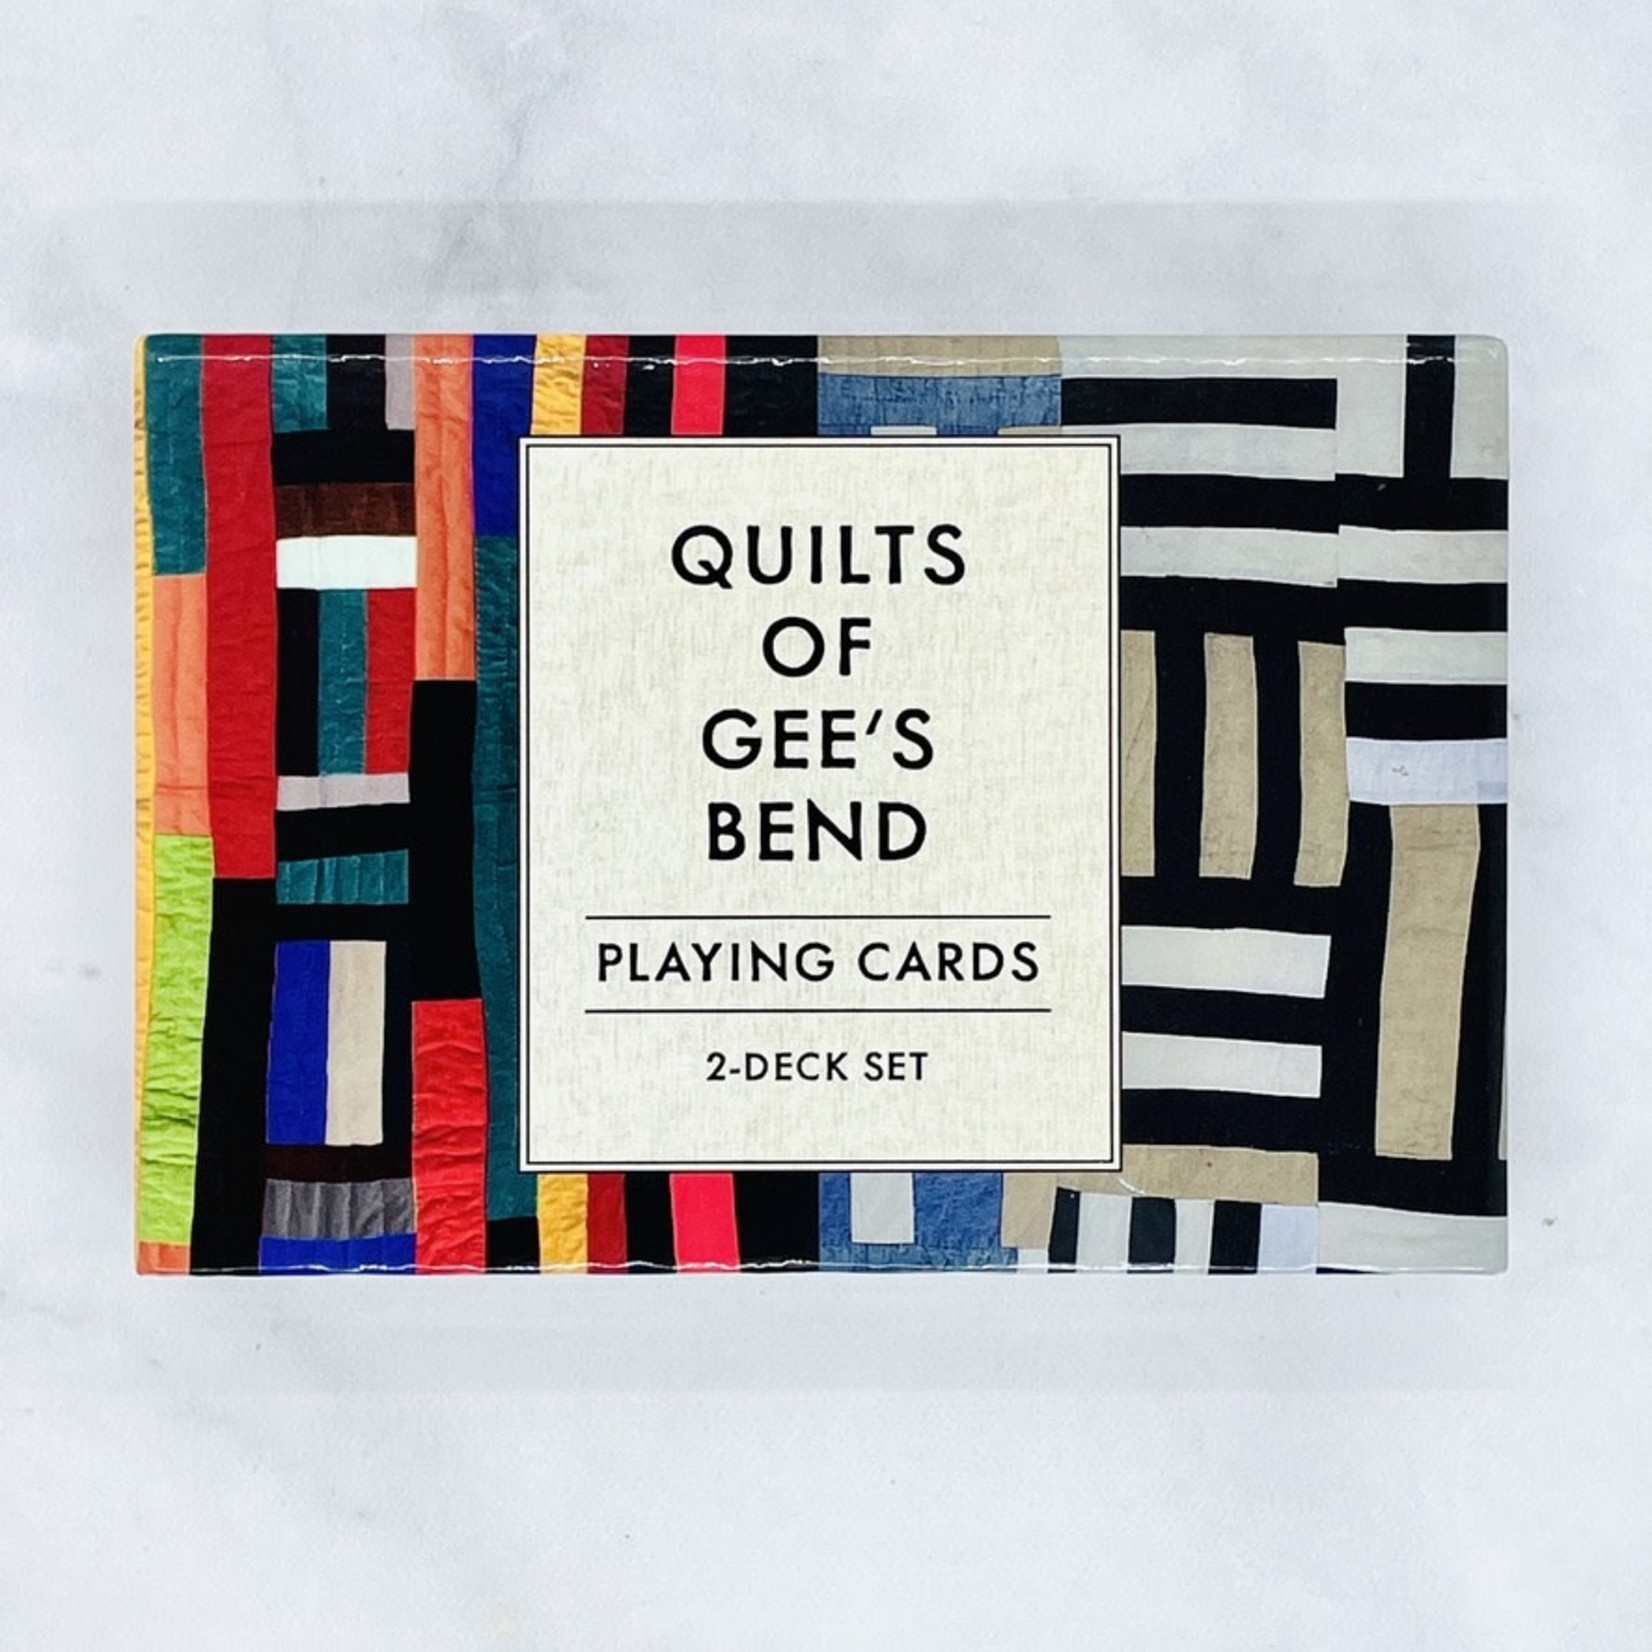 Quilts of Gee's Bend Playing Cards